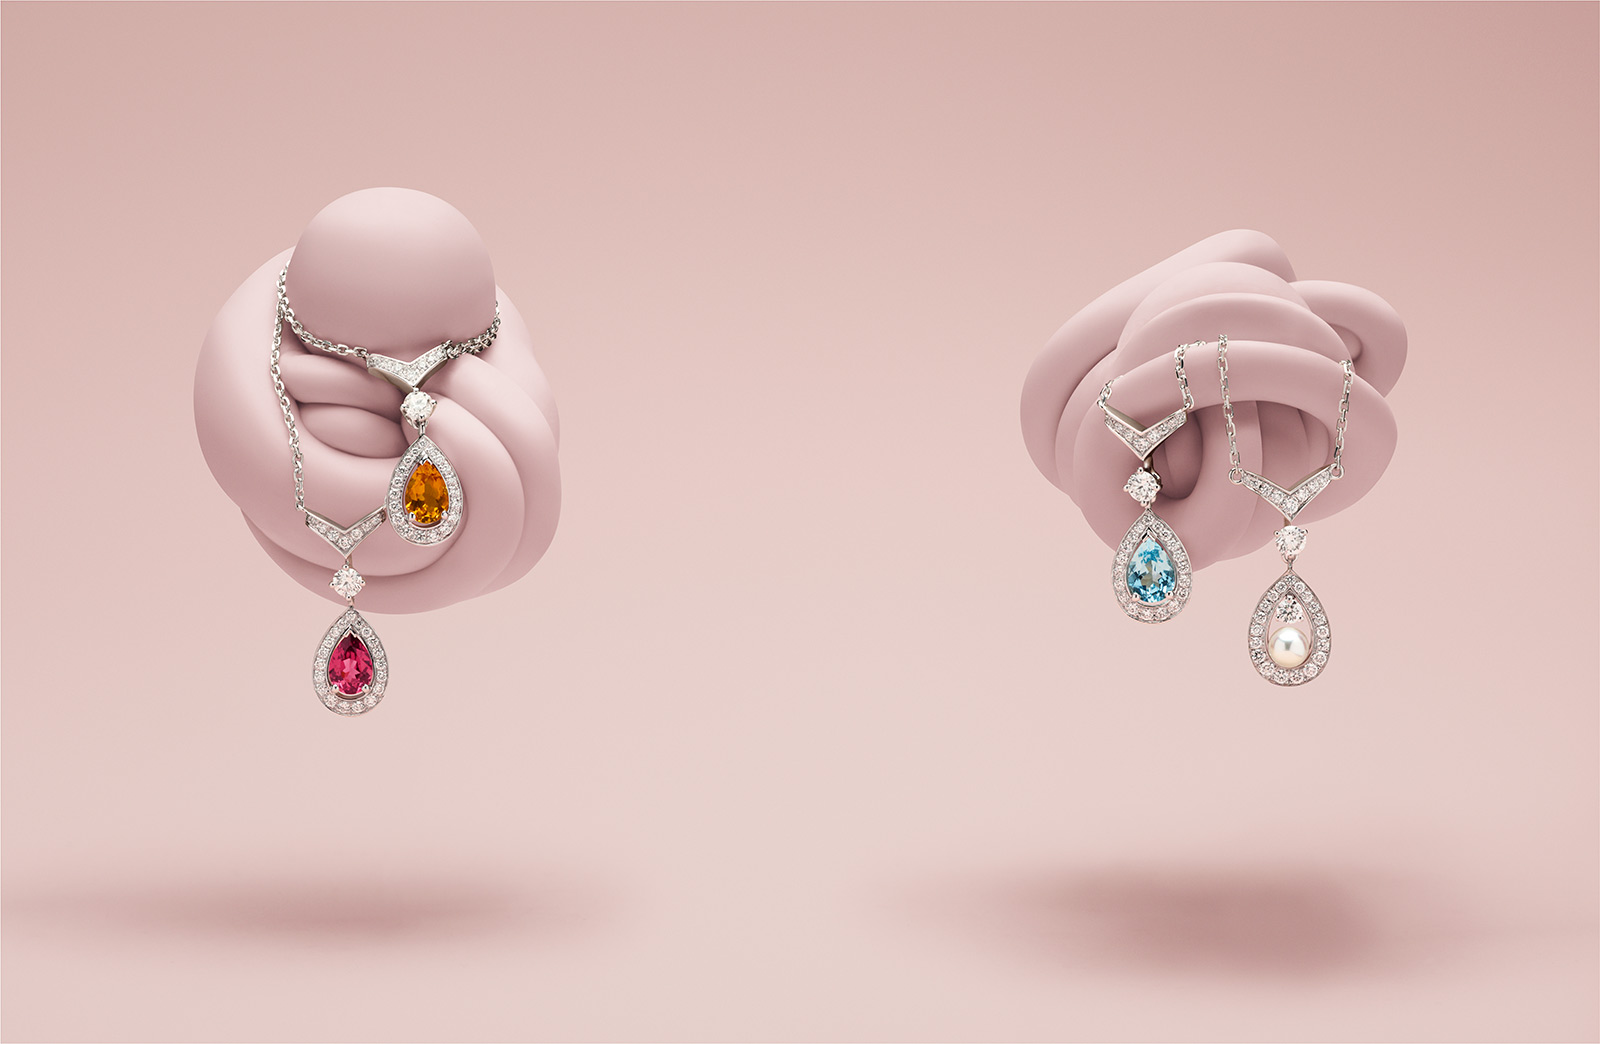 Chaumet 'Joséphine Aigrette' necklaces with 0.60ct of; rhodolite garnet, citrine, and aquamarine, with pearl and diamonds